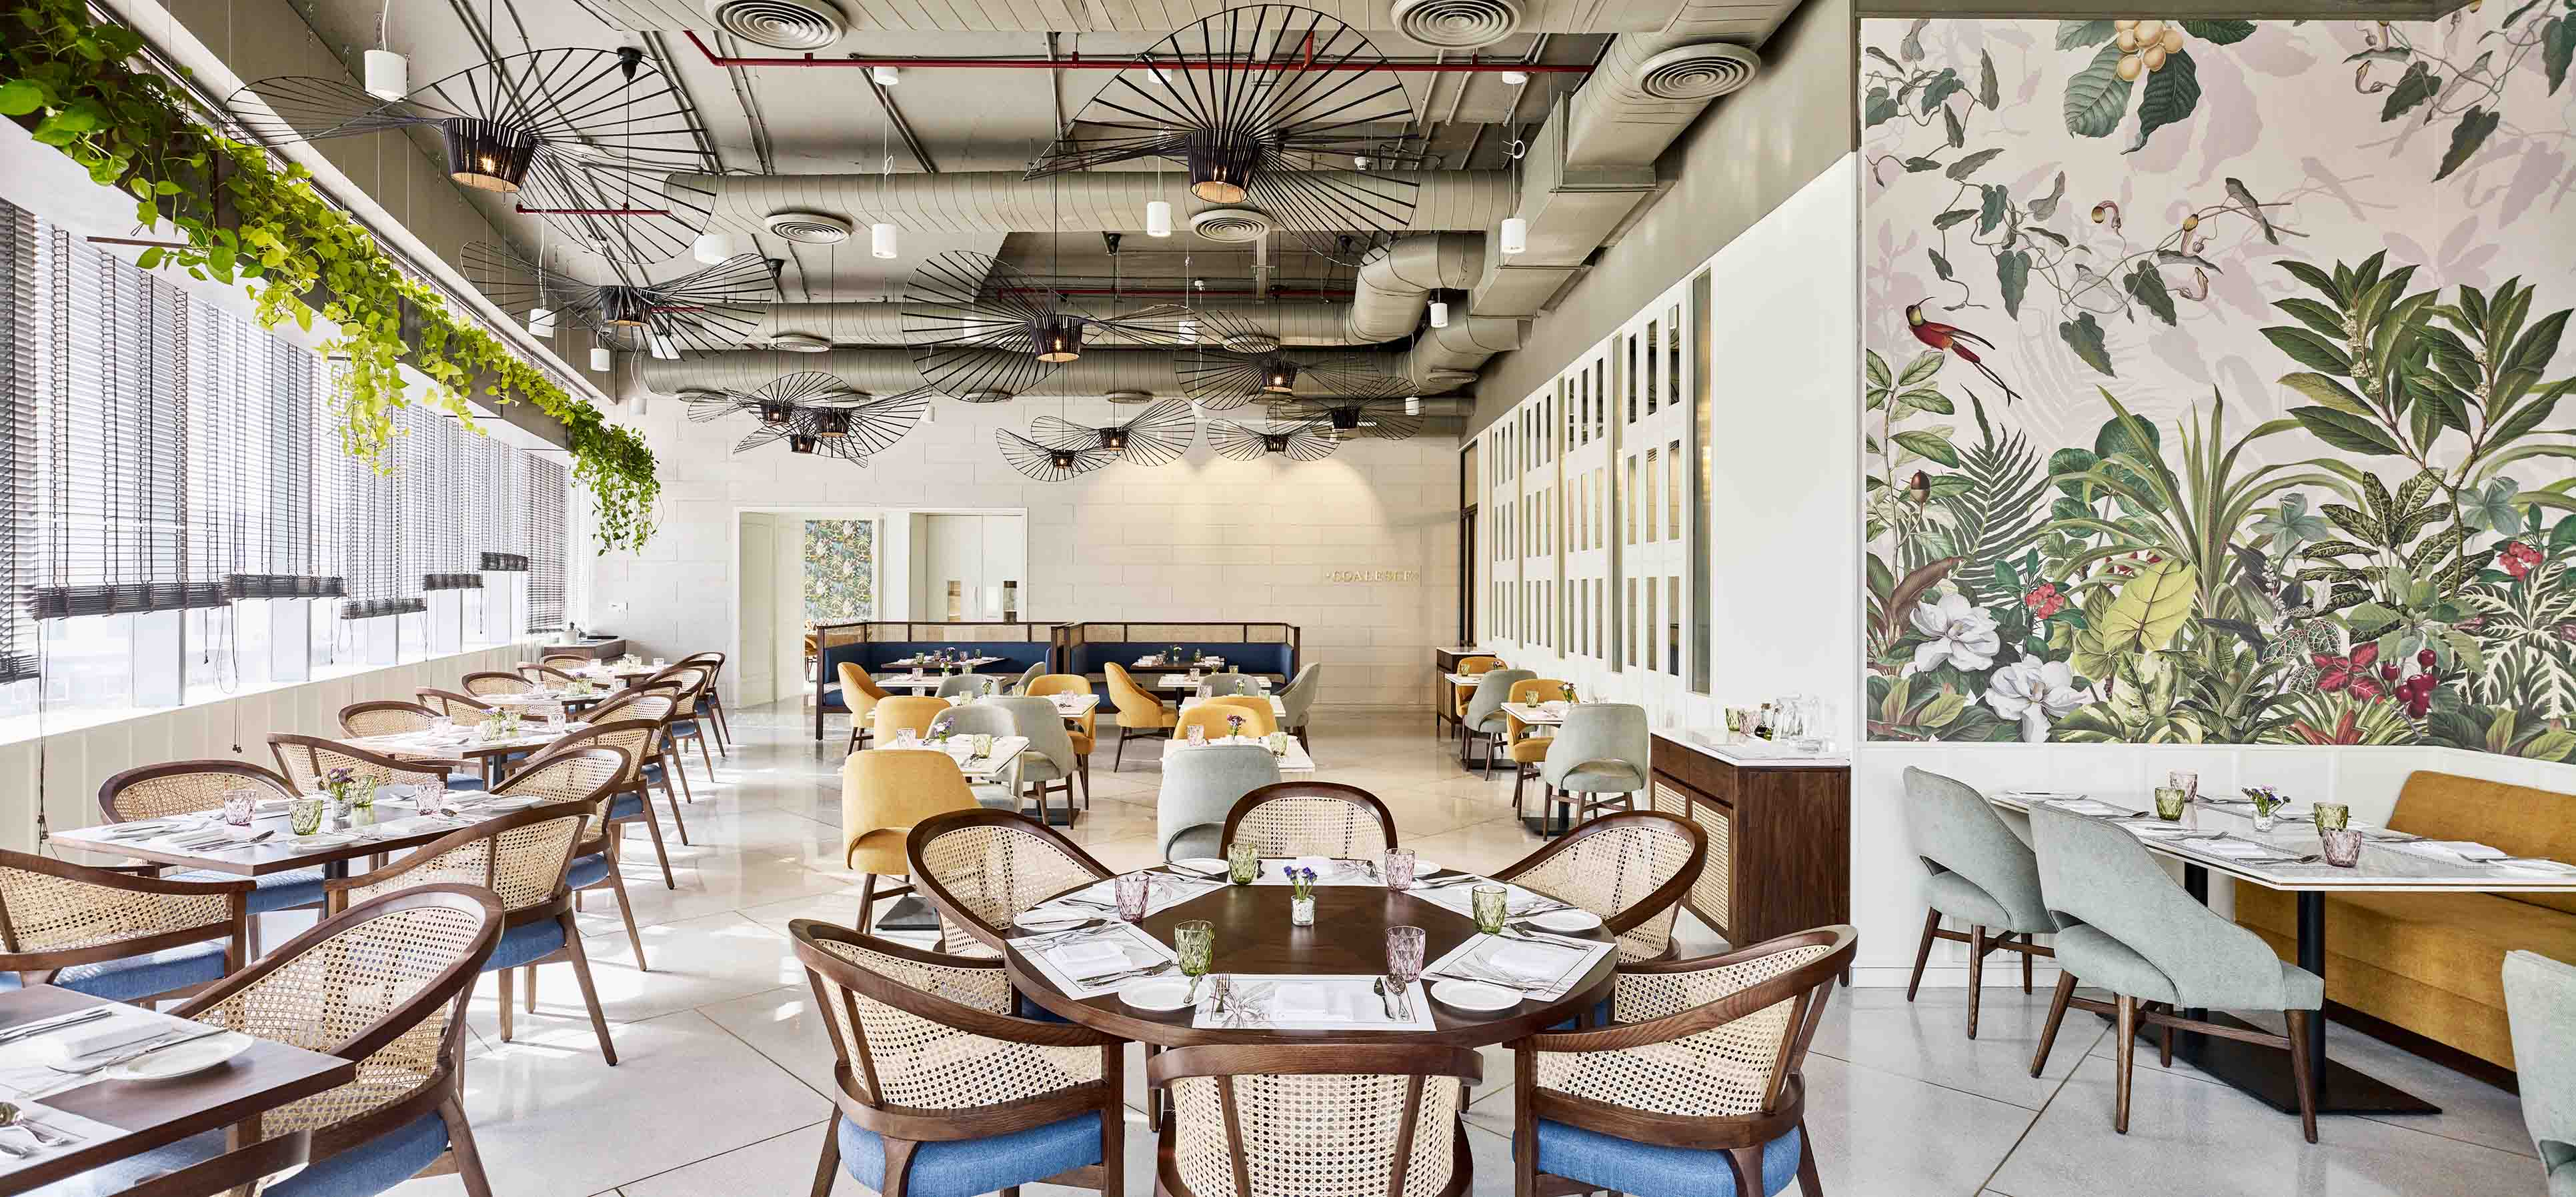 The Quorum Gurgaon Coalesce, the restaurant